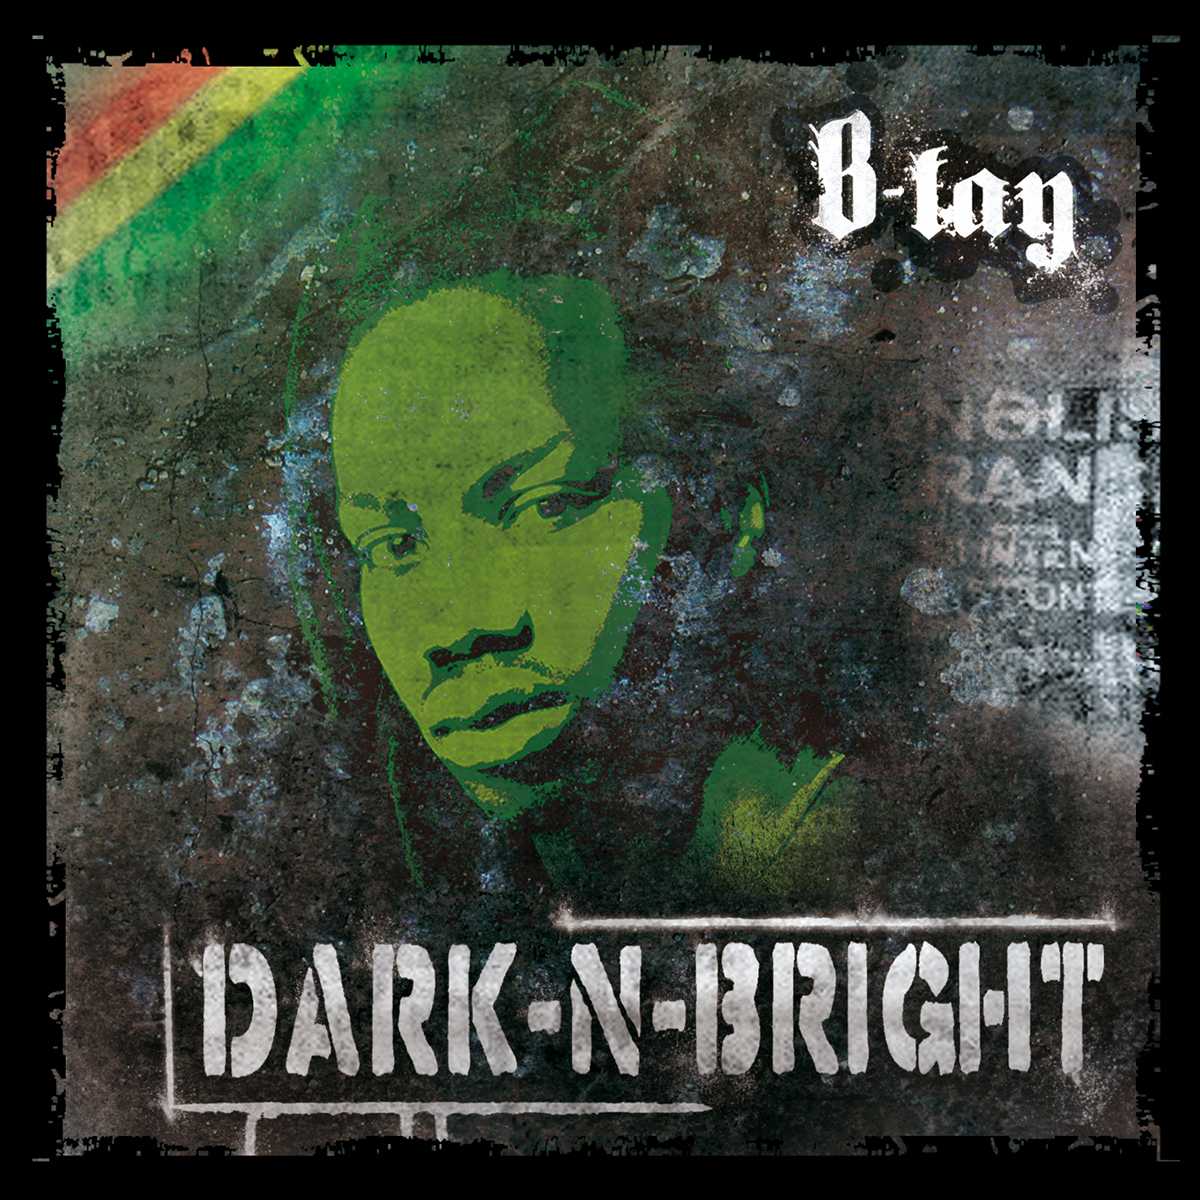 B-Lay DarknBright (CD Cover)